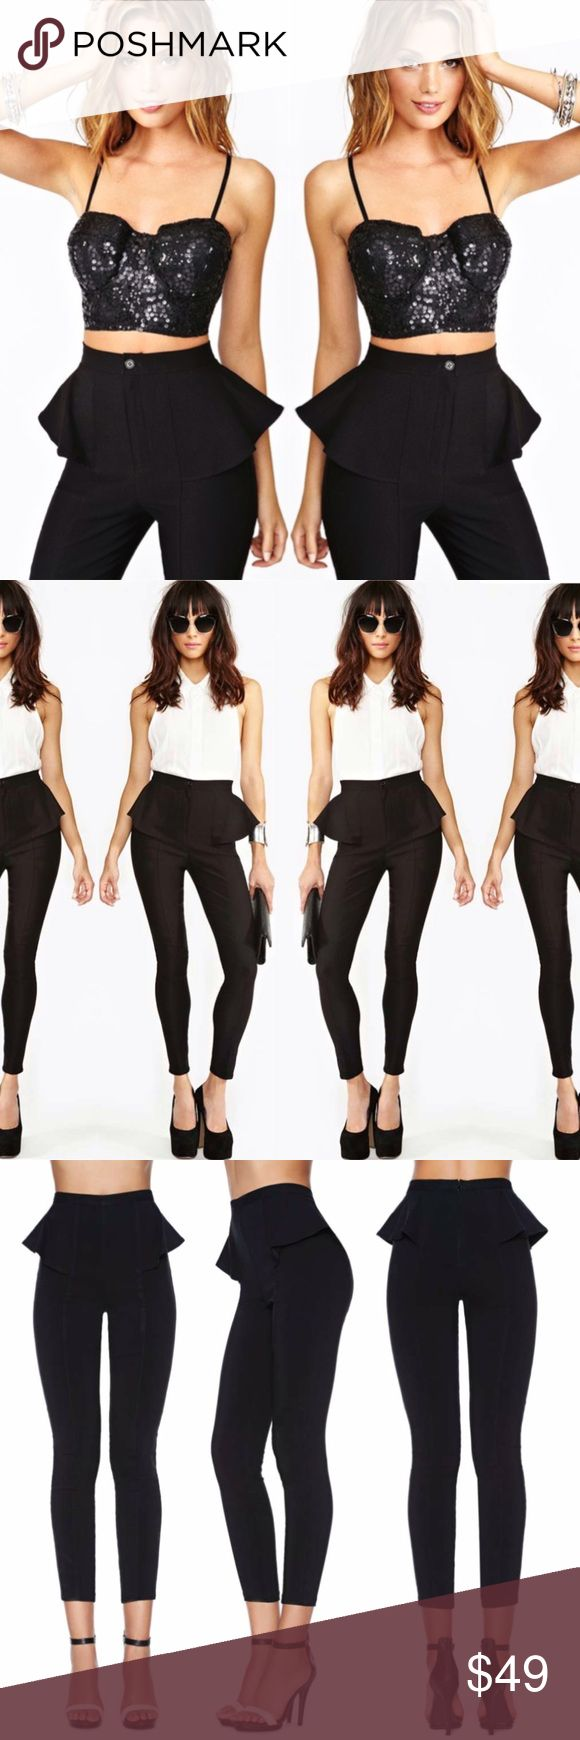 Nasty gal black peplum pants Super stretchy! No trades. Always open to offers. Sold out online! Nasty Gal Pants Skinny